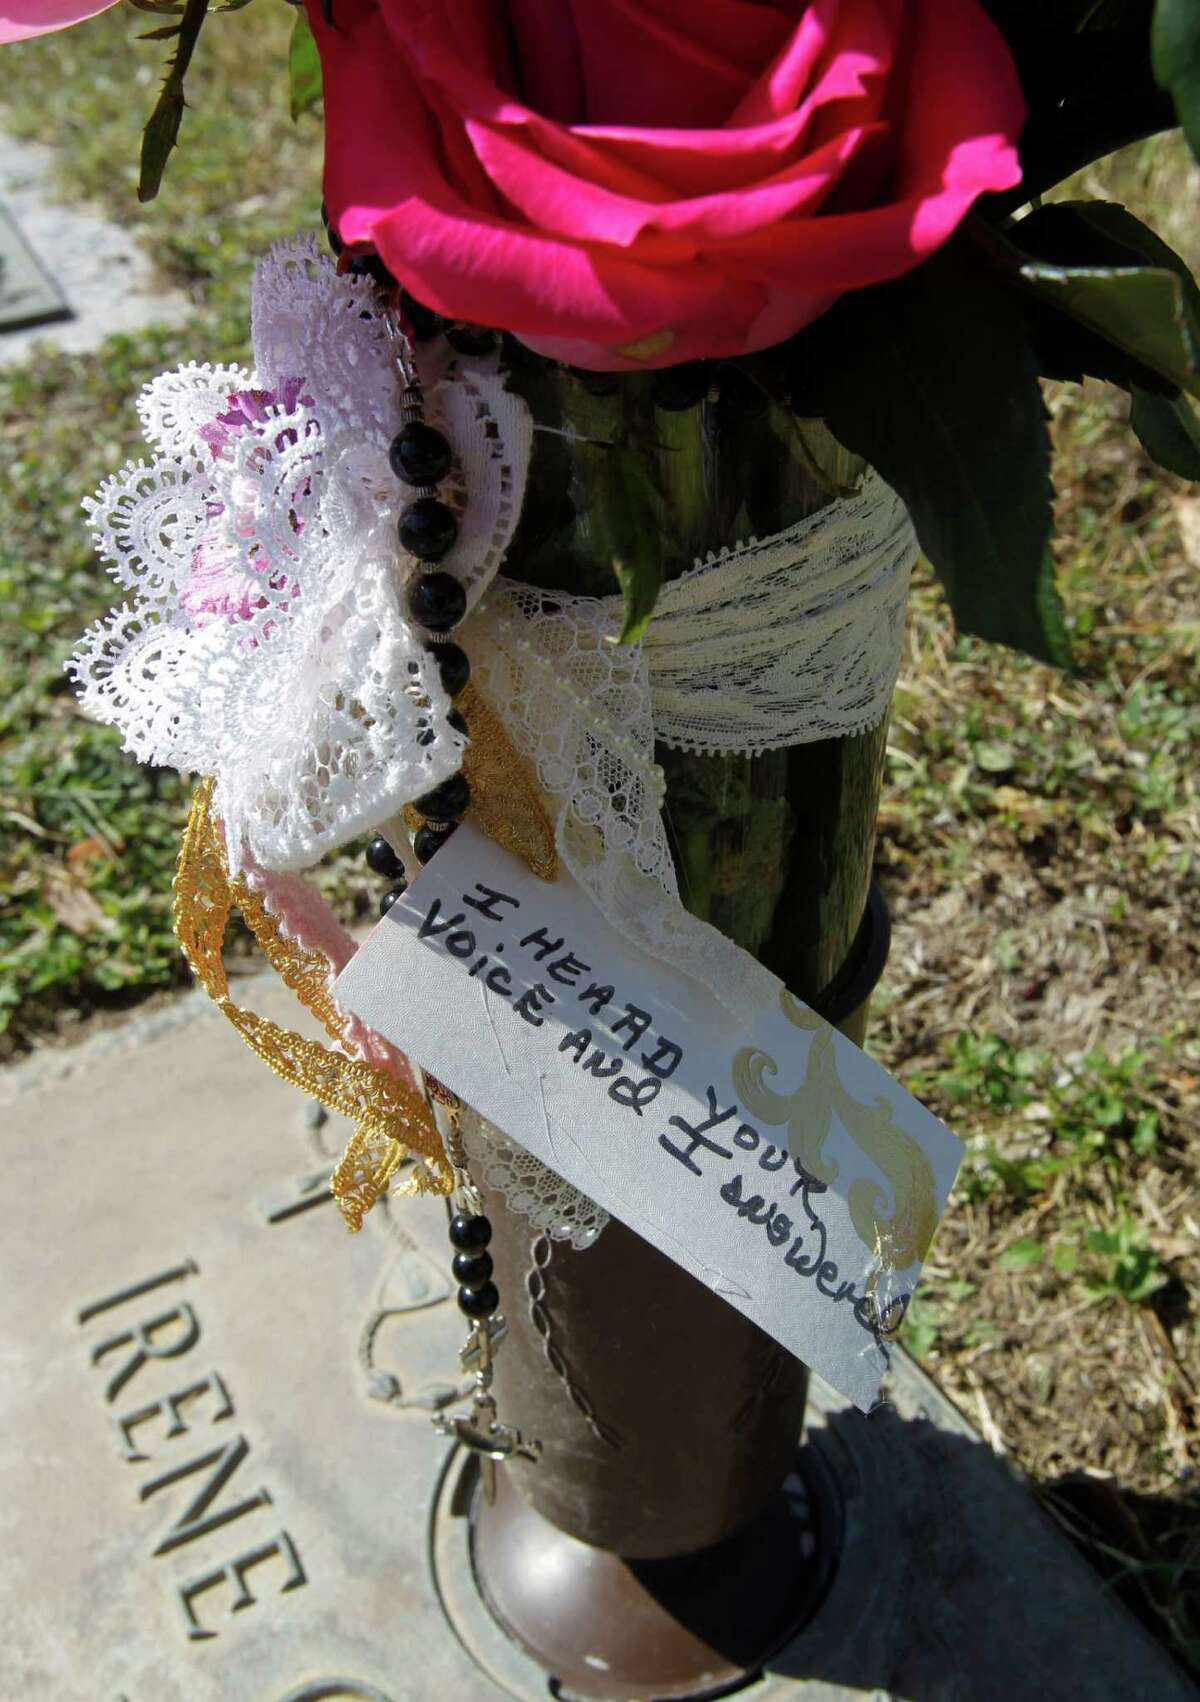 MCALLEN, Texas - The gravesite of Irene Garza with fresh flowers a cross and a hand written note at Valley Memorial Gardens Photo by Delcia Lopez